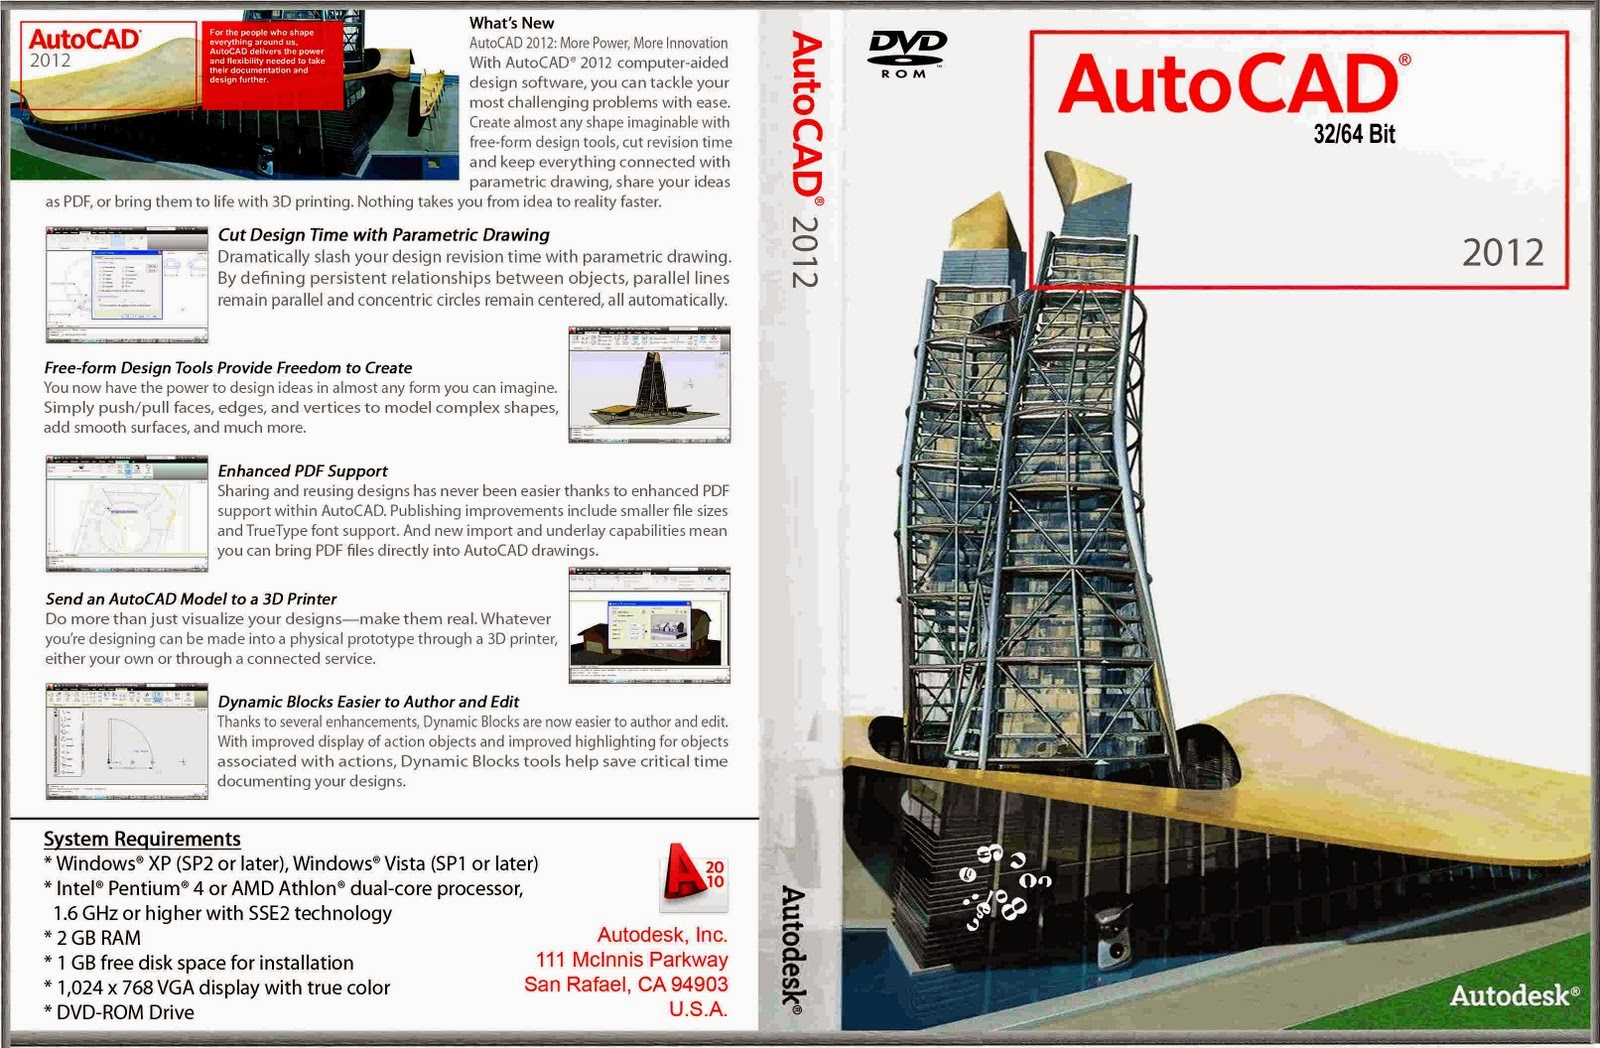 X force keygen autocad 2013 free download 32 bit puzzlelivin.